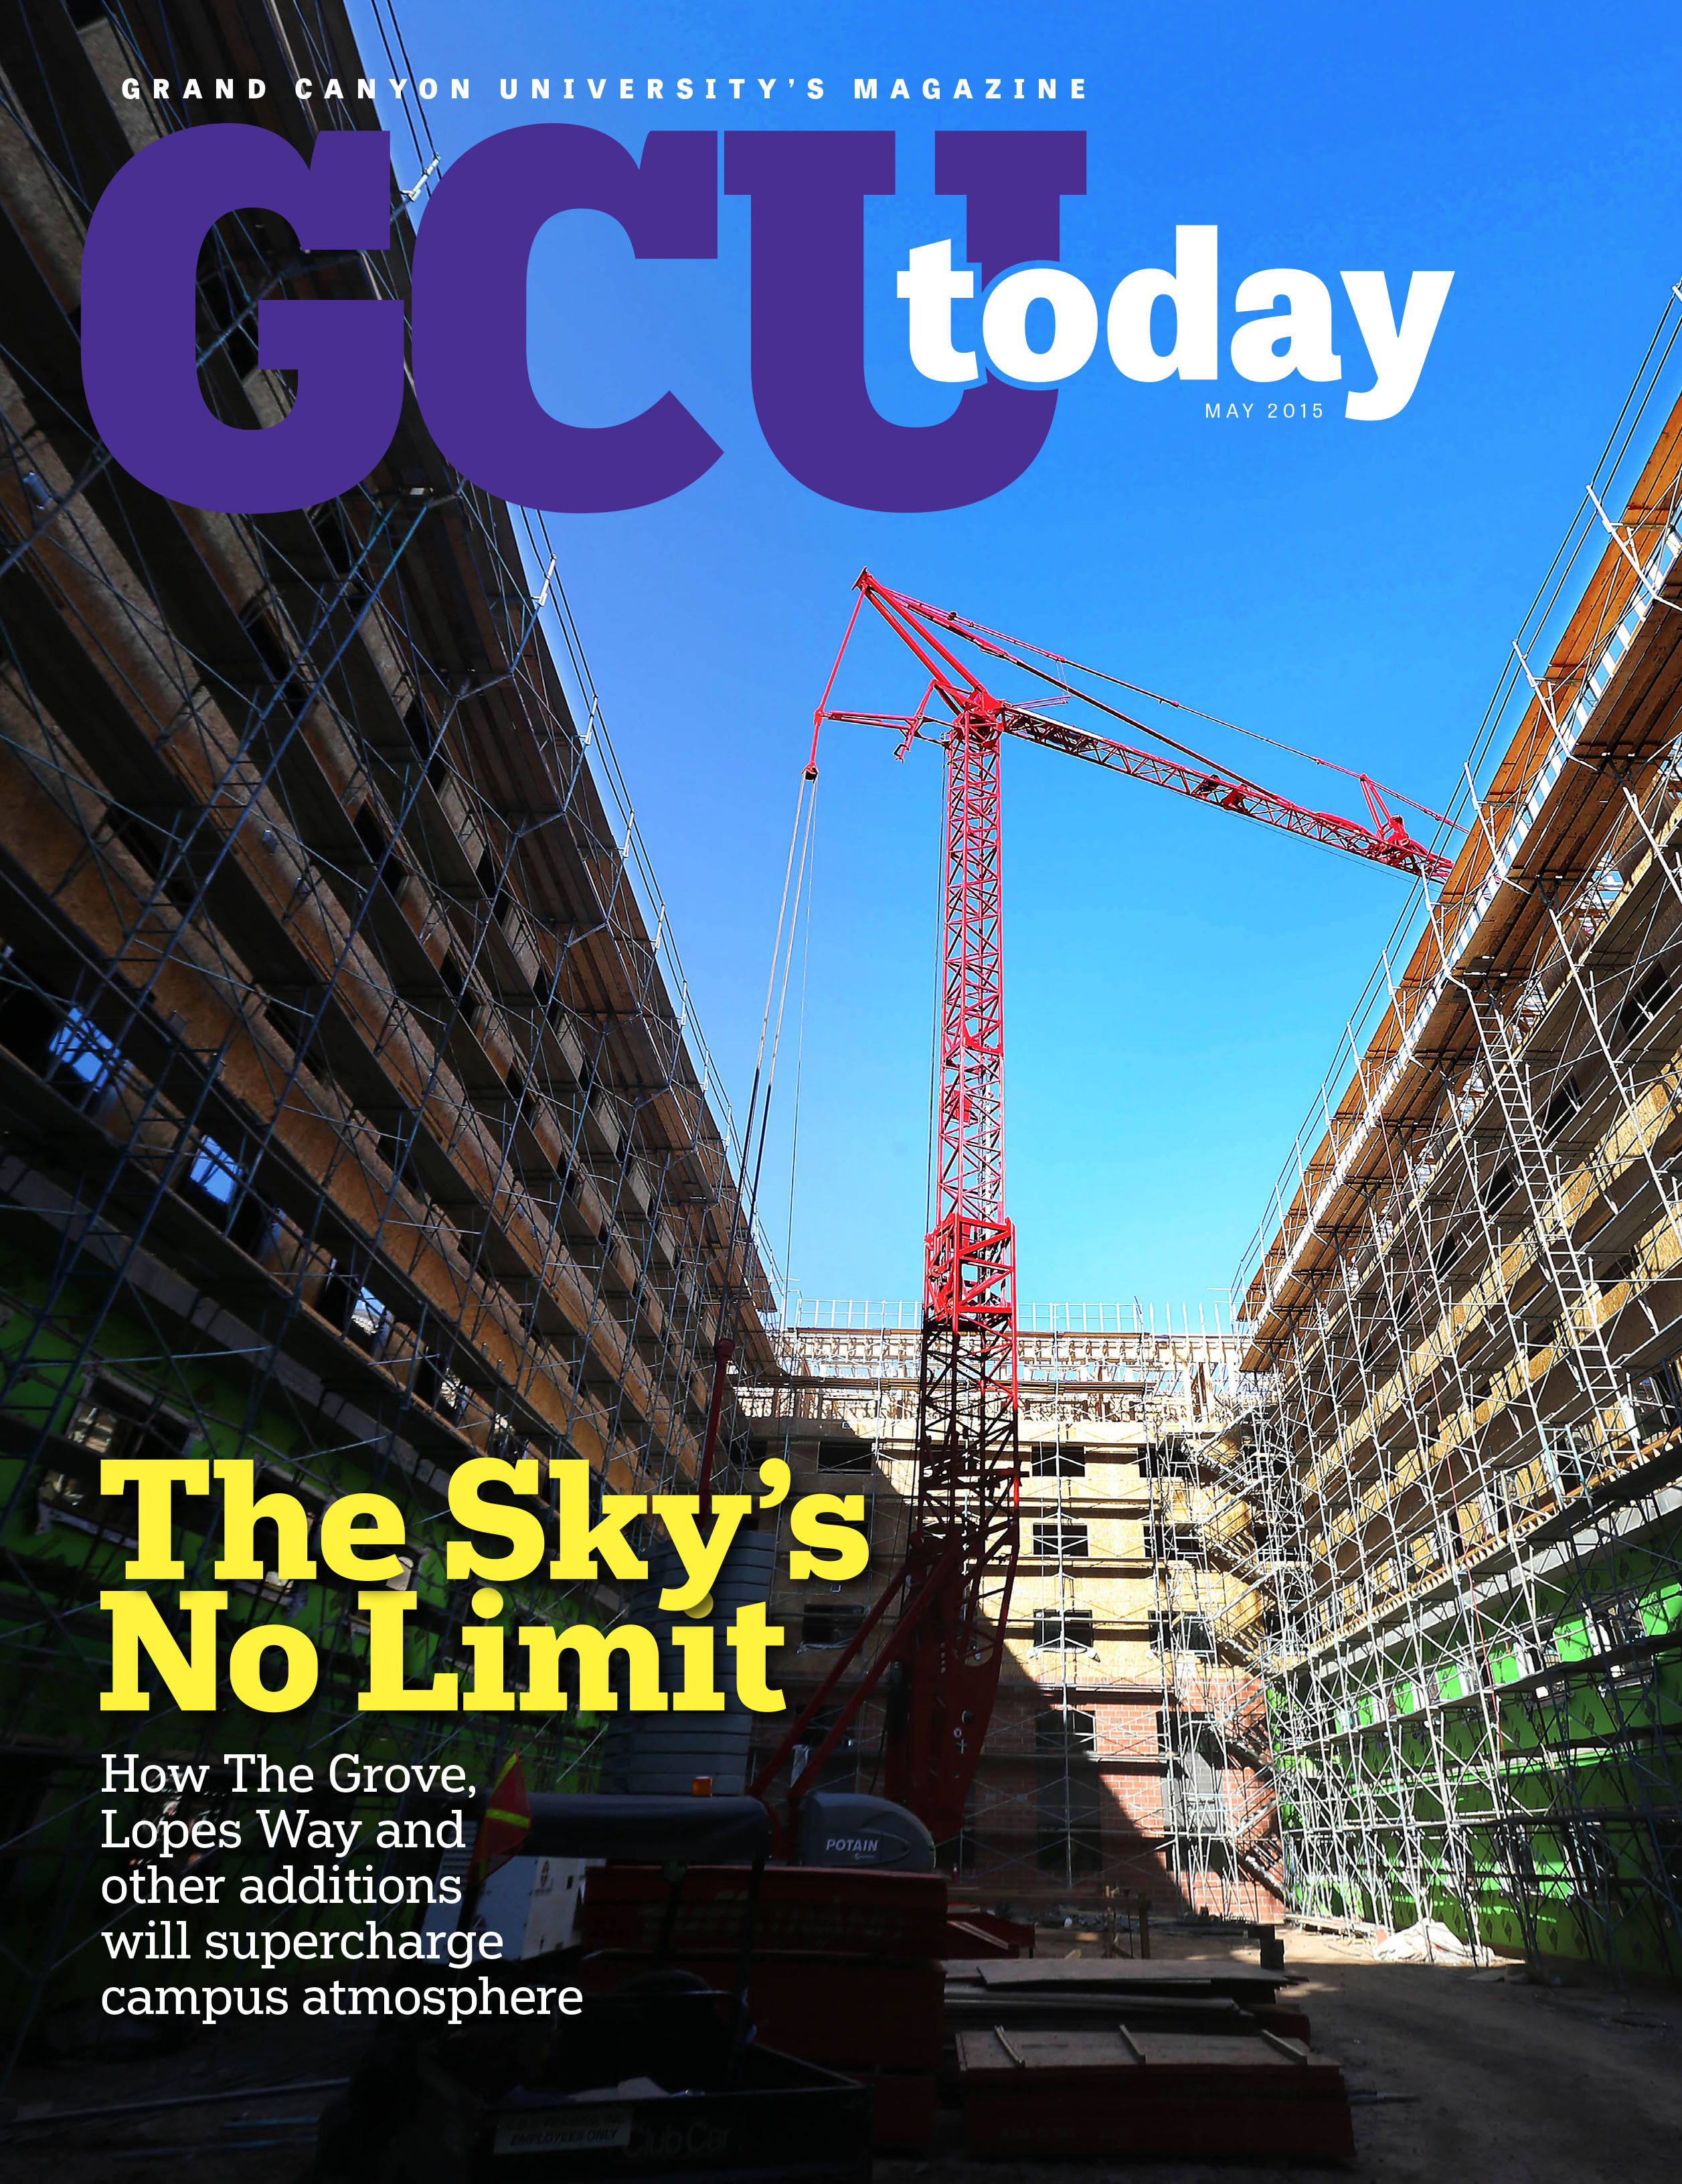 gcutoday may 2015